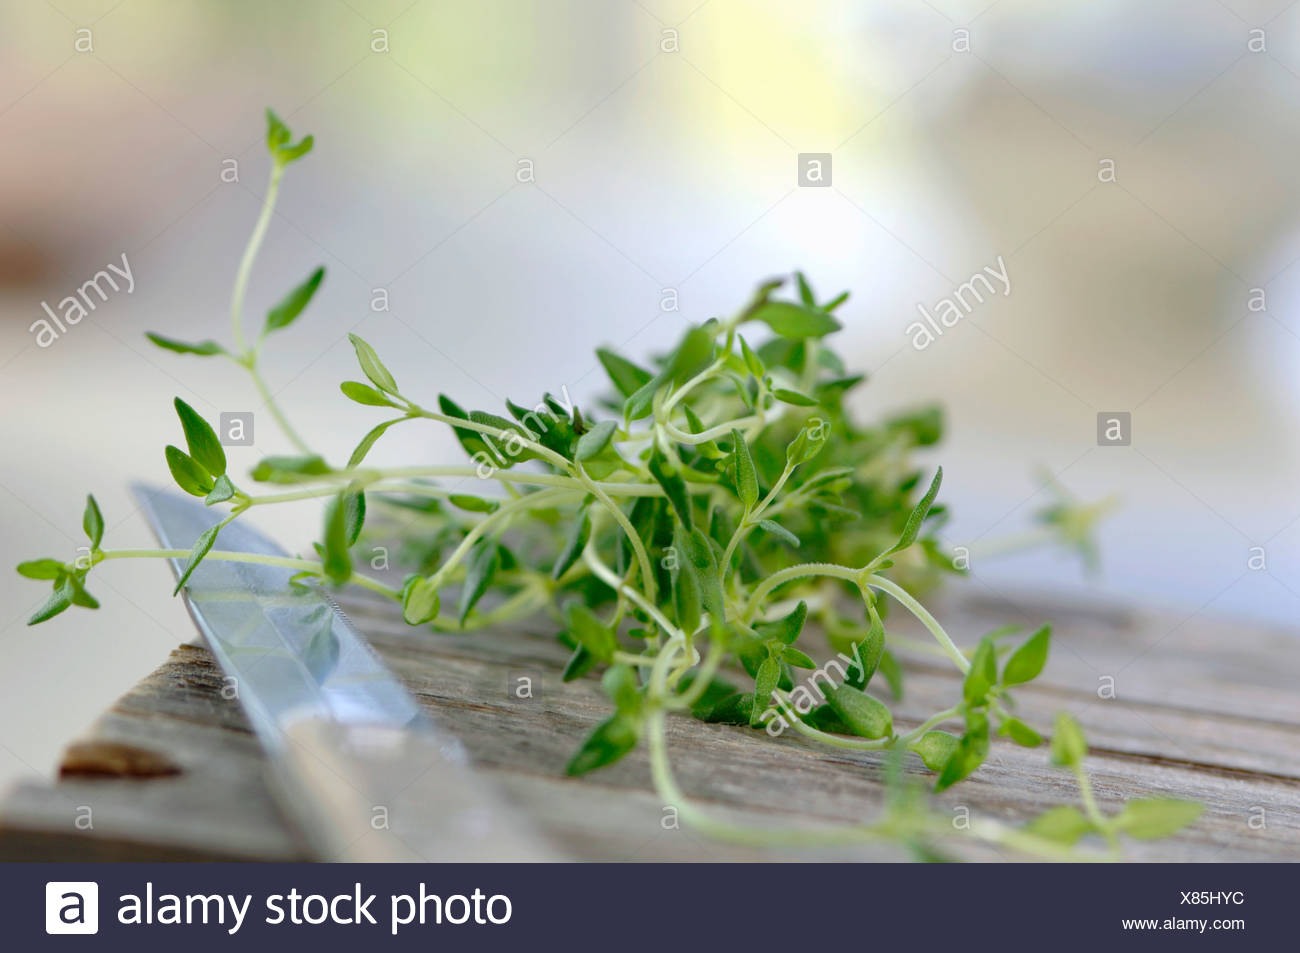 Thyme on chopping board - Stock Image